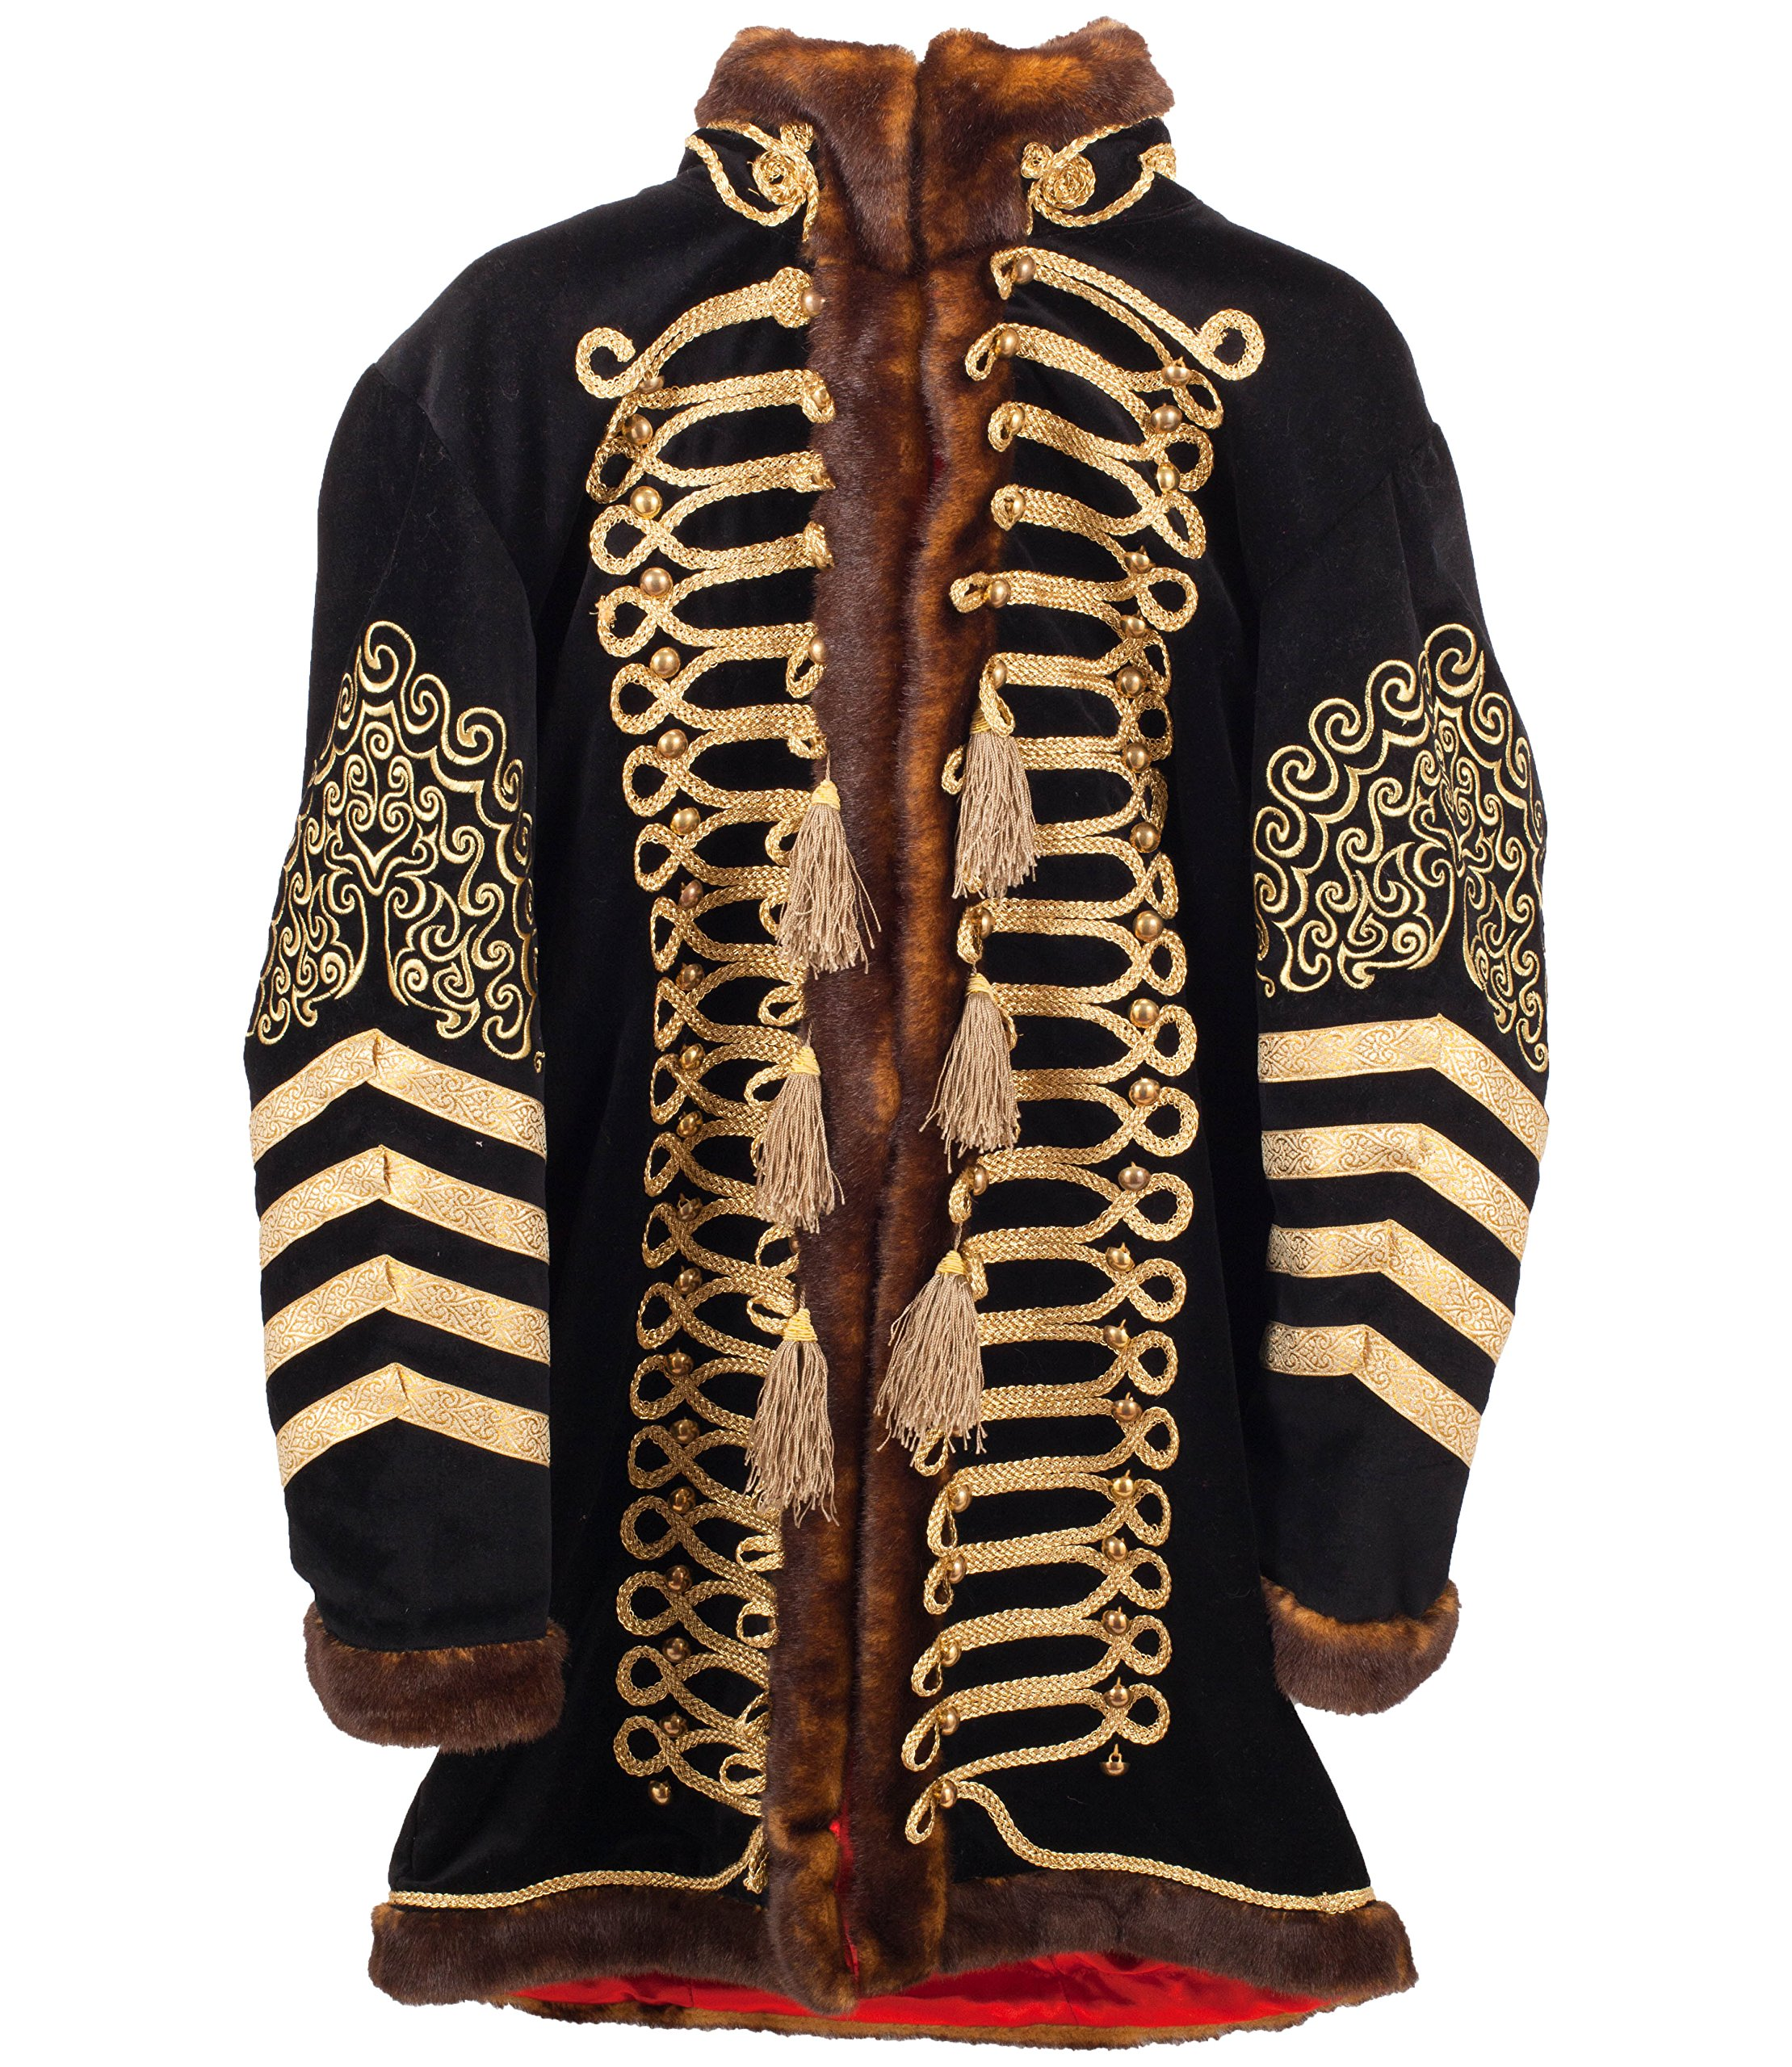 ELOPE Jimi Hendrix Costume Jacket for Men (S/M) by by elope